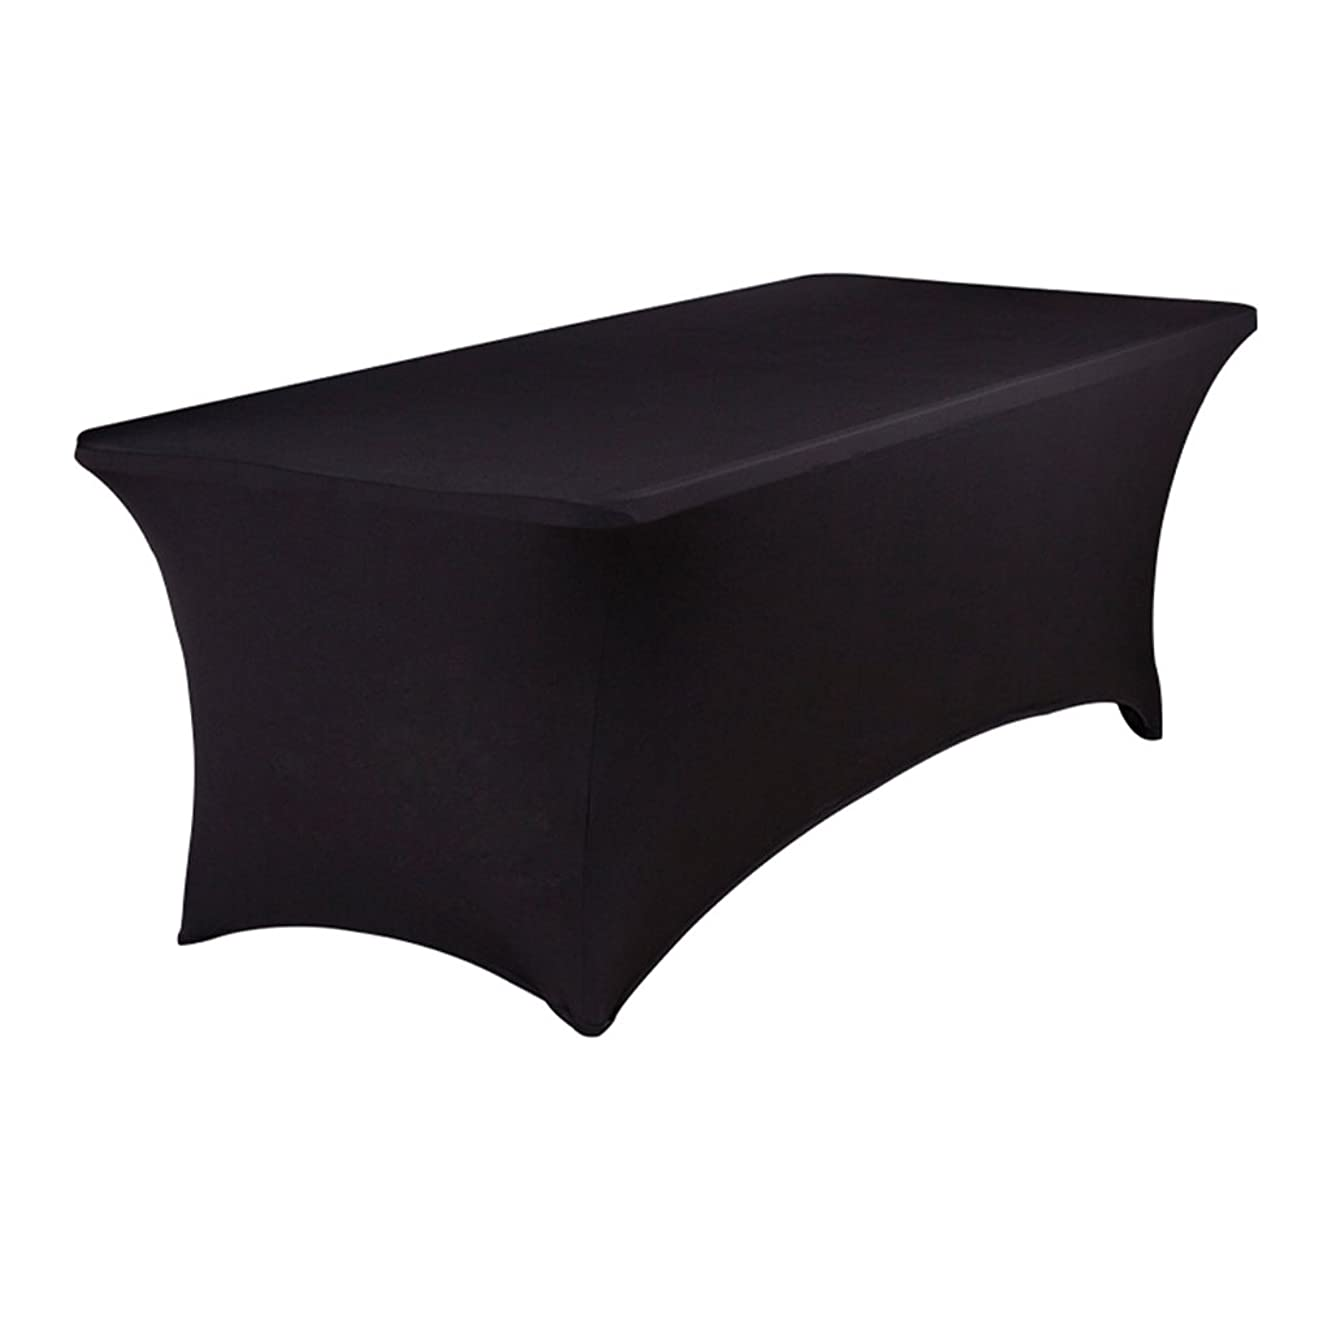 BTSKY 6FT Rectangular Stretch Tablecloth - Spandex Table Cover for 6 Foot Tables Wedding, Banquet, Party, DJ, Tradeshows, Vendors Decoration, Black,